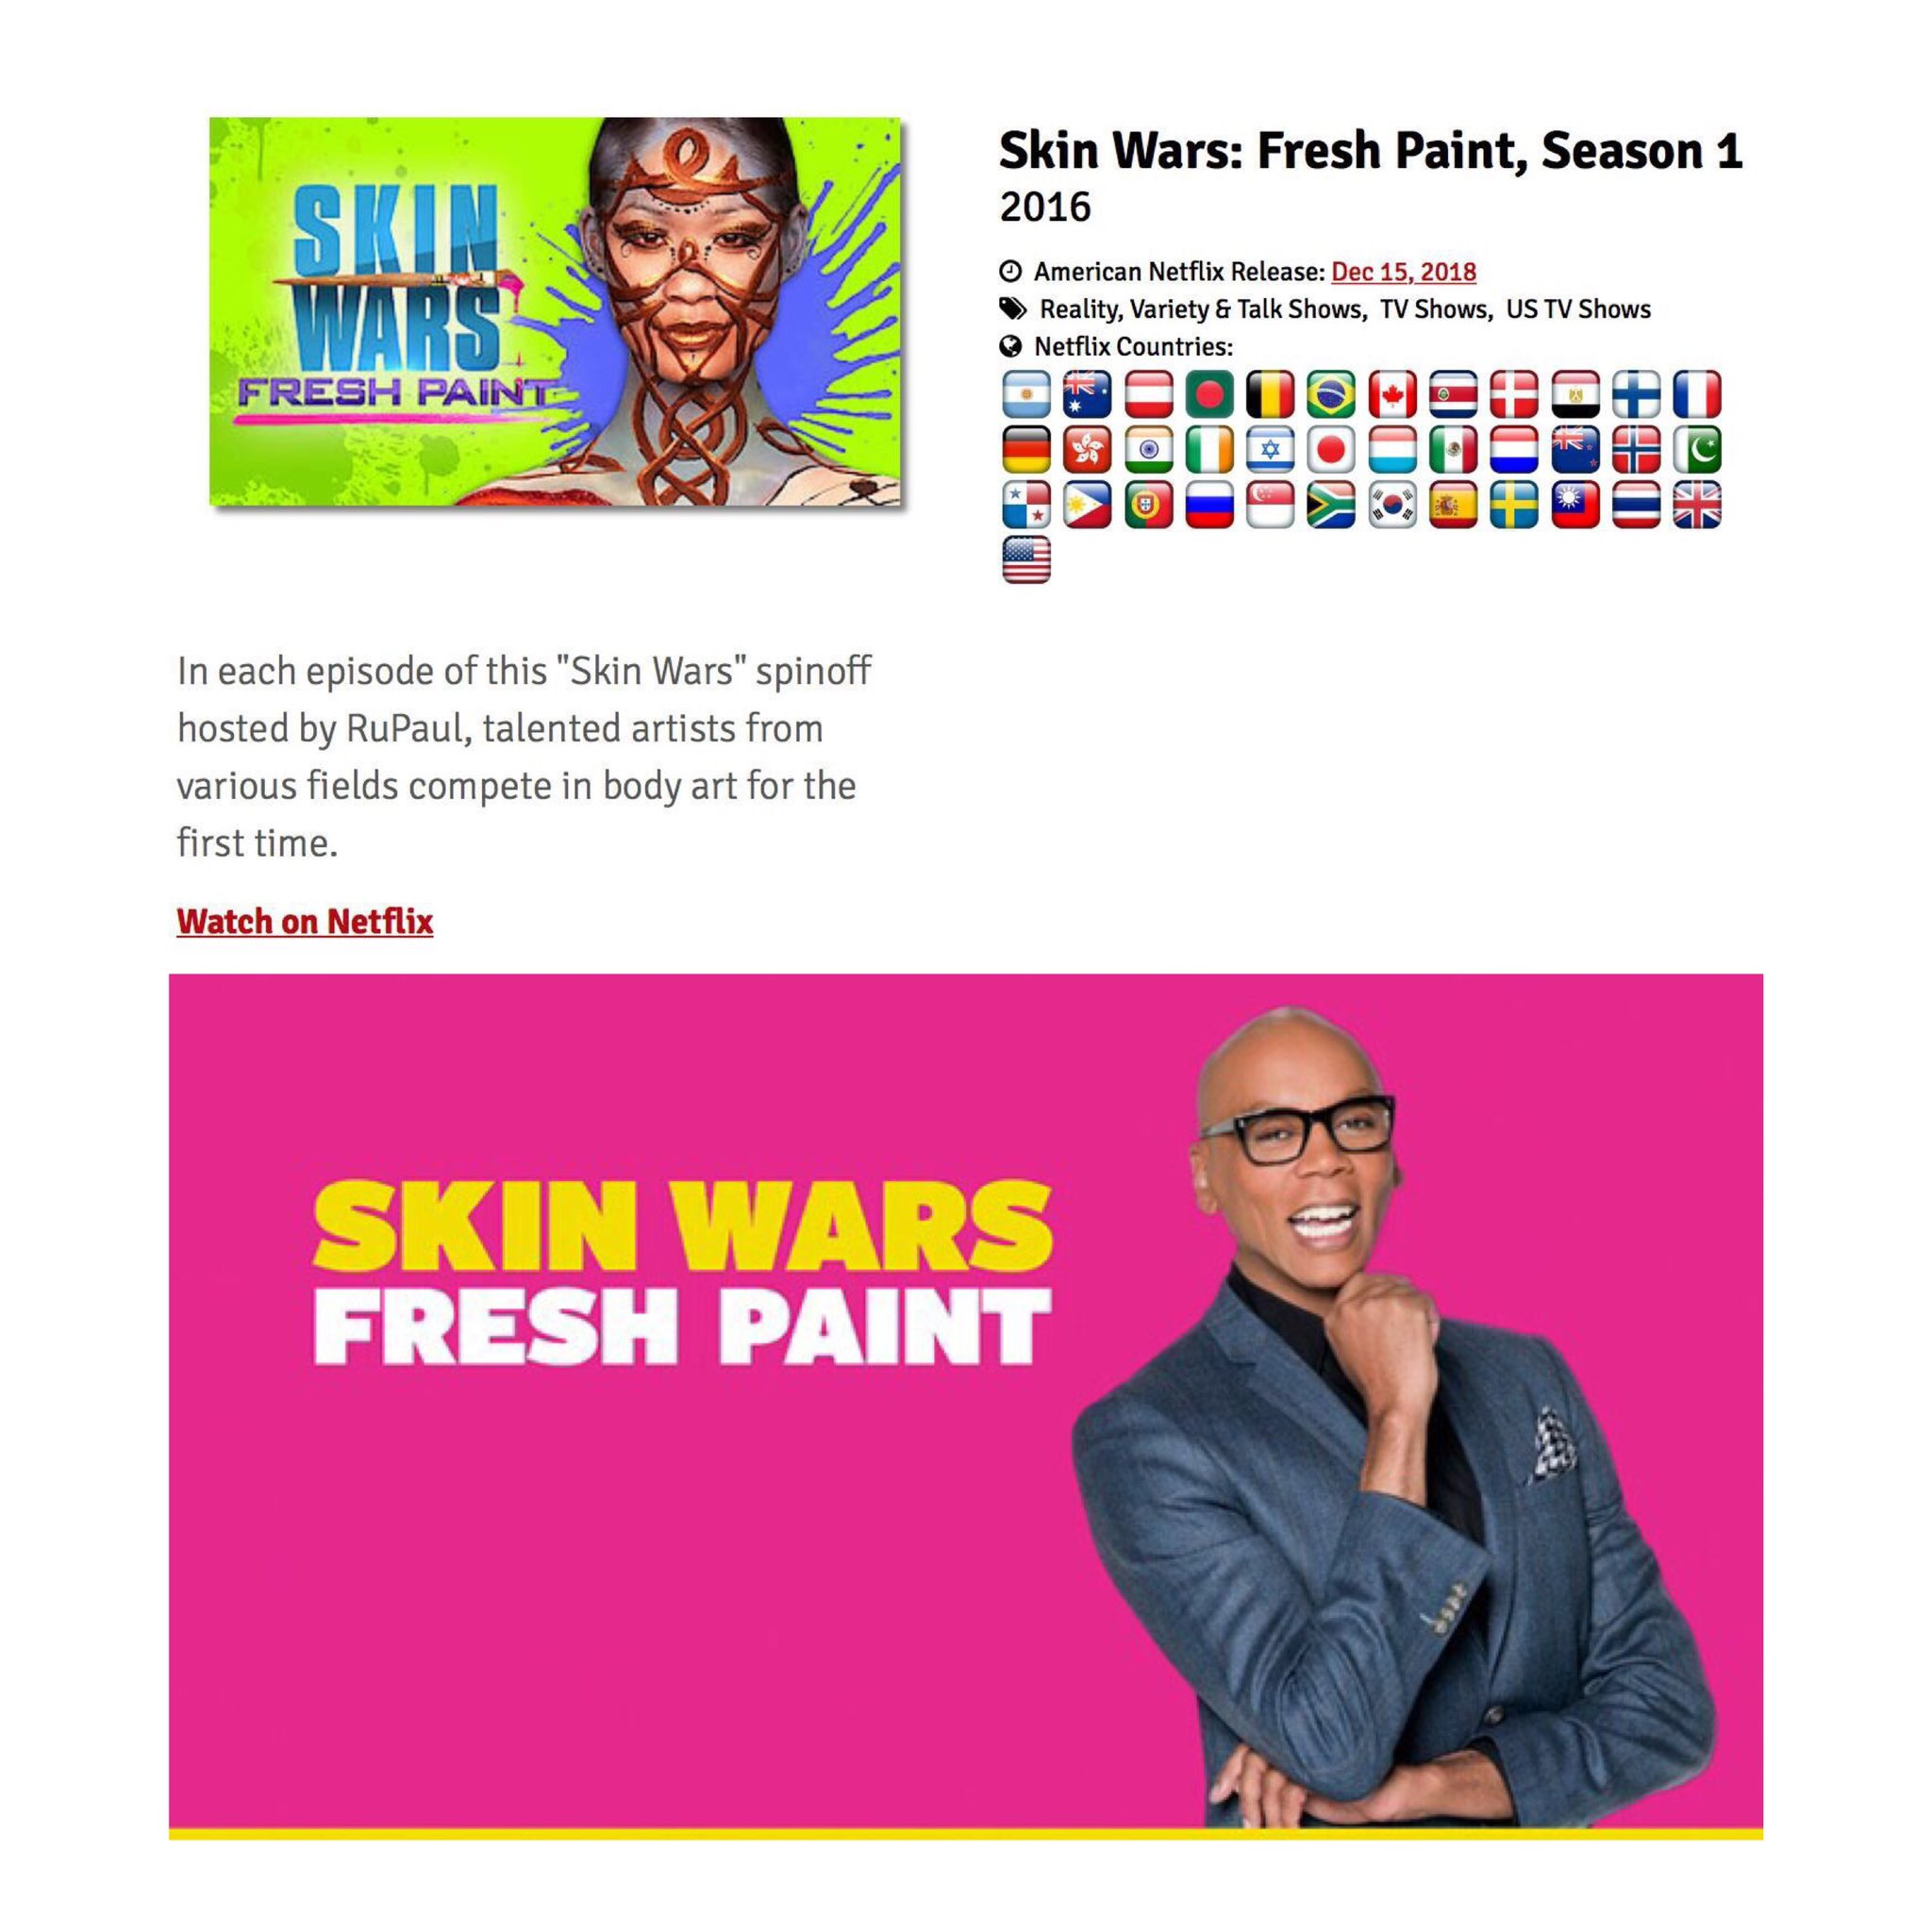 Michael Levitt On Twitter Super Excited To Share Skin Wars Fresh Paint Is Now Streaming On Netflix Hosted By Rupaul Artists From Other Disciplines Try Body Painting For The First Time With